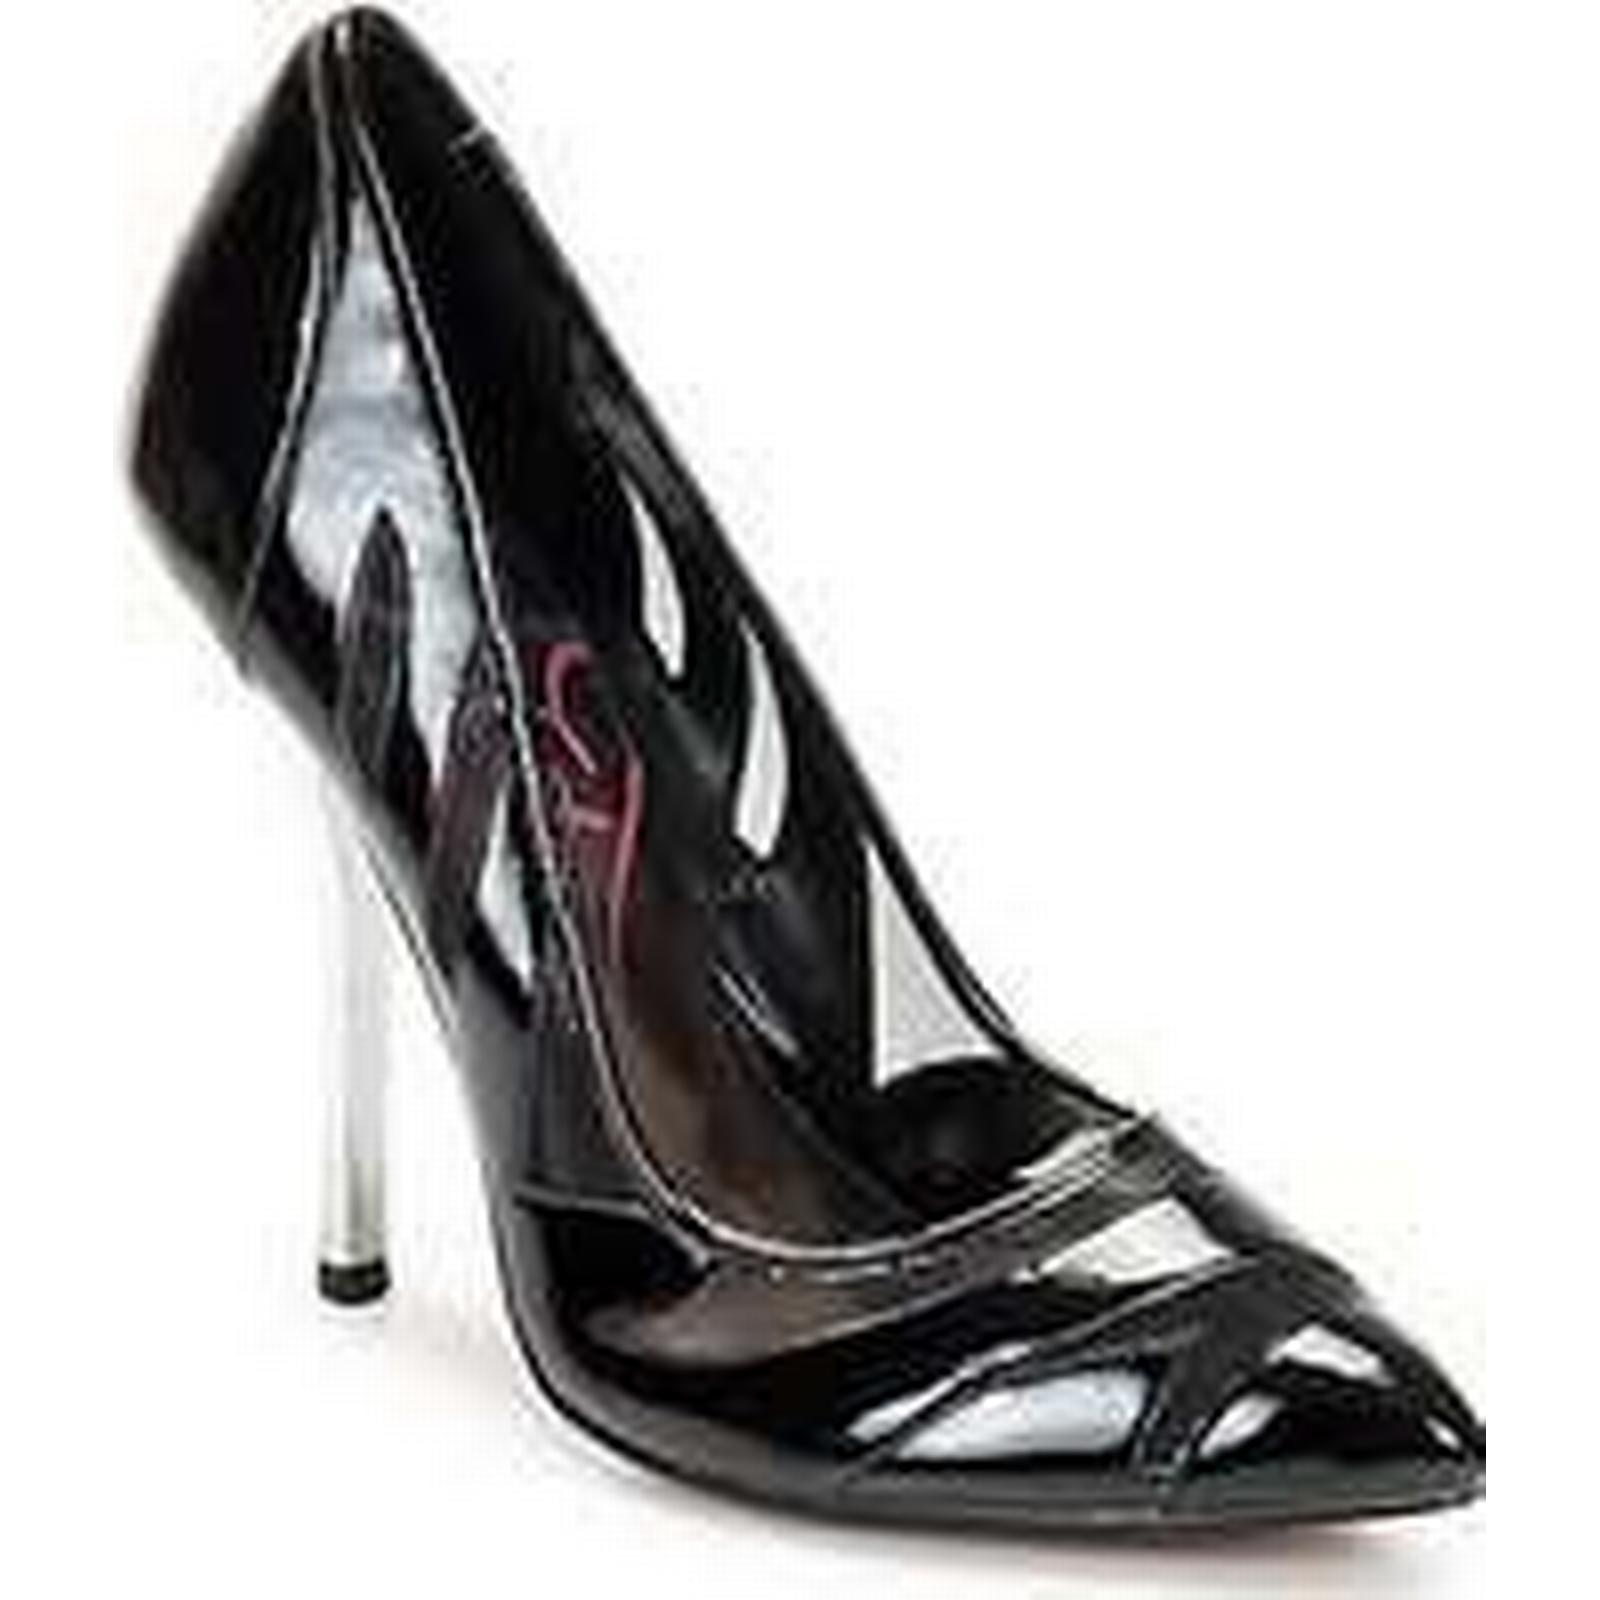 Spartoo.co.uk Shoes Lipsy SABRINA women's Court Shoes Spartoo.co.uk in Black 7e371d